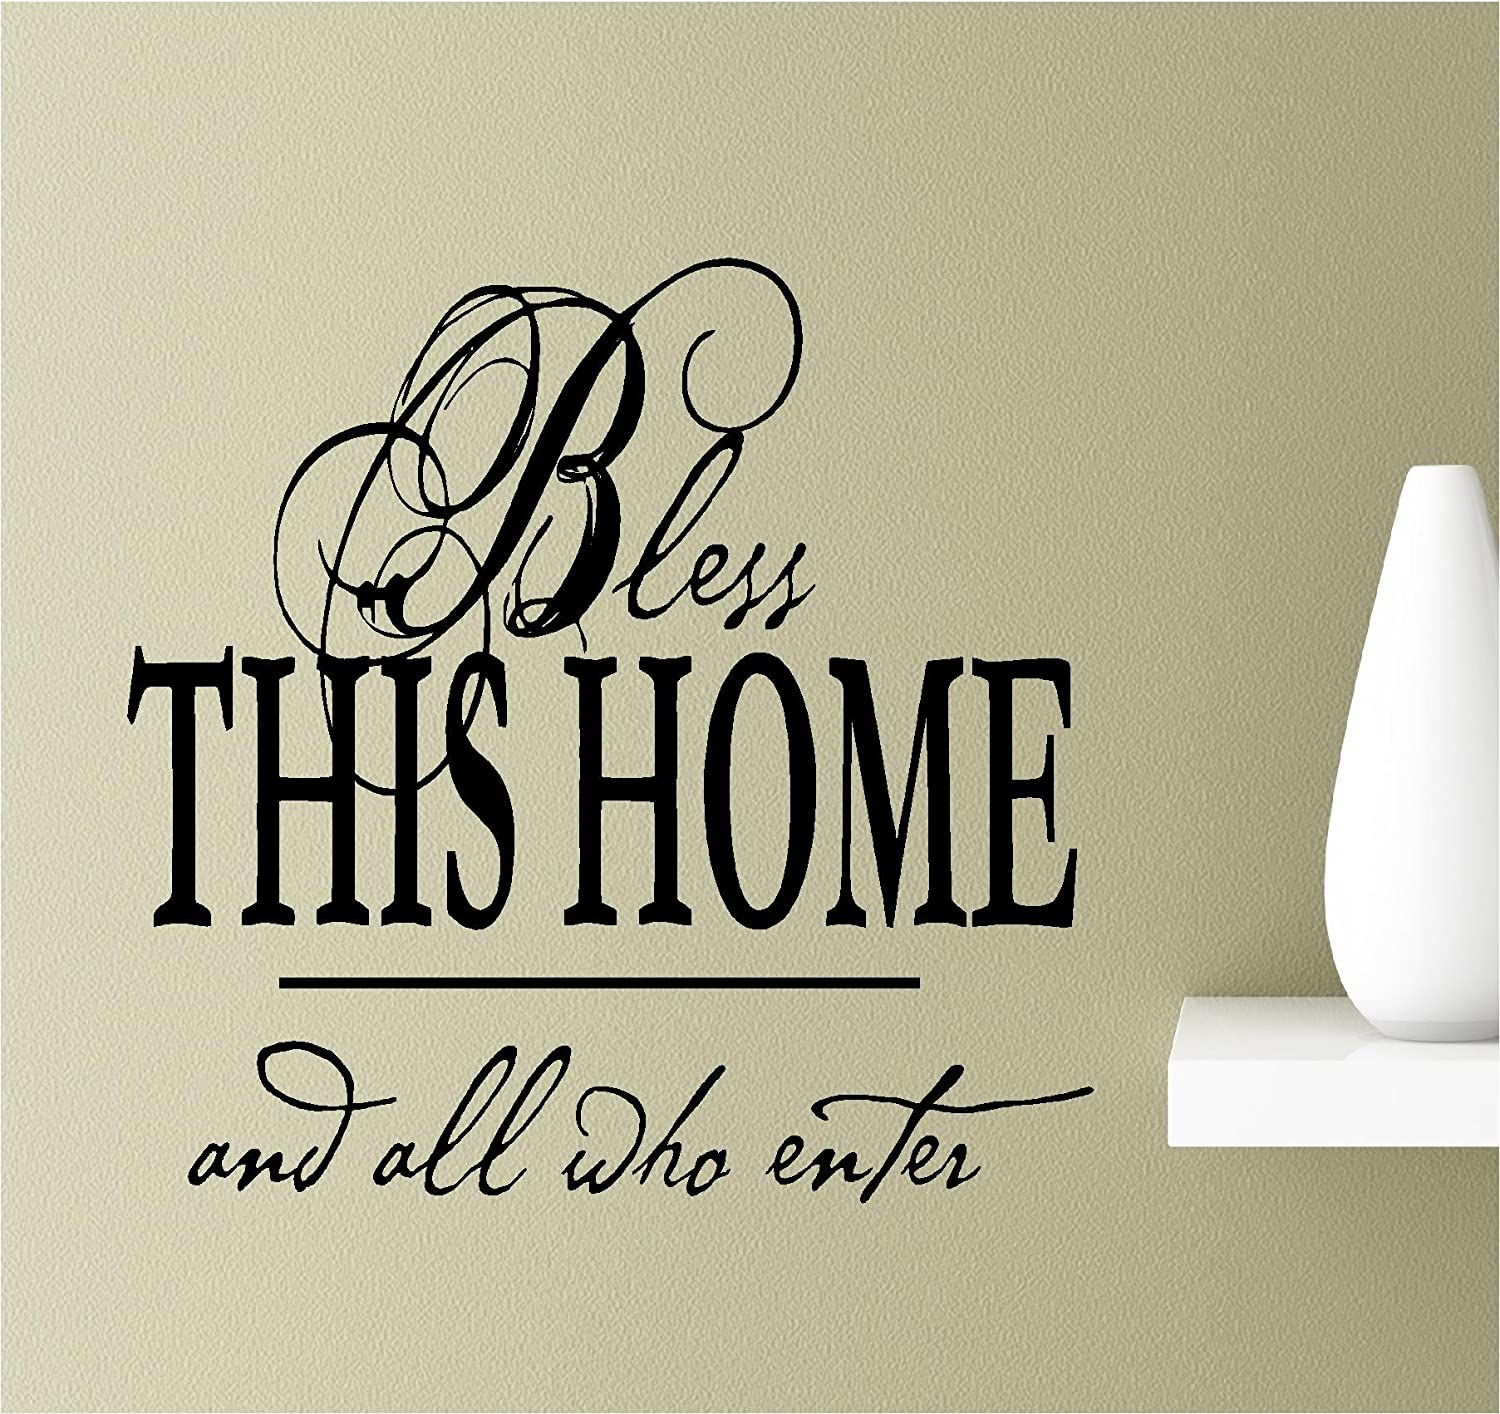 Bless This Home and All who Enter Vinyl Wall Art Inspirational Quotes Decal Sticker